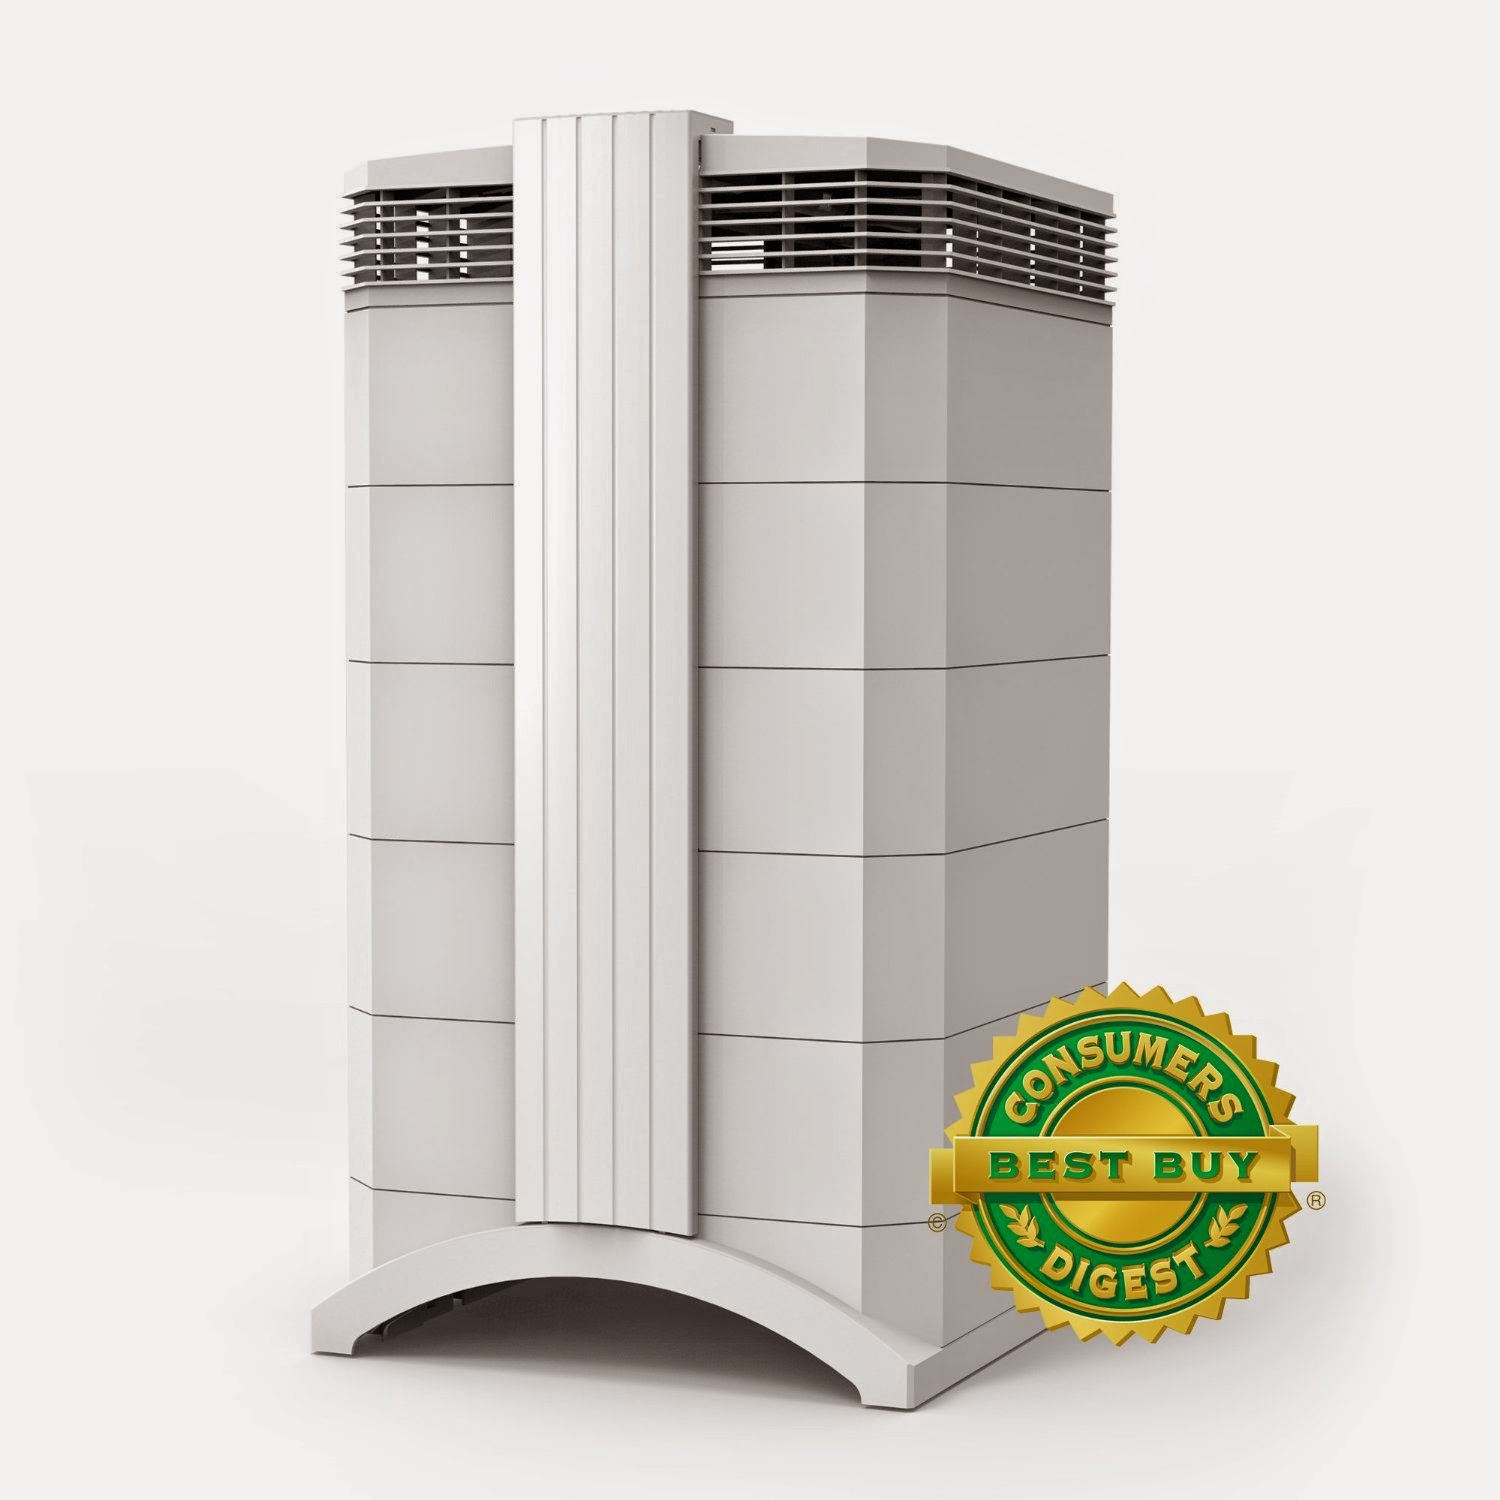 IQ HealthPro Plus Air Purifier, review, advanced air cleaner for the home, ideal for allergy & asthma sufferers, with Hyper HEPA technology